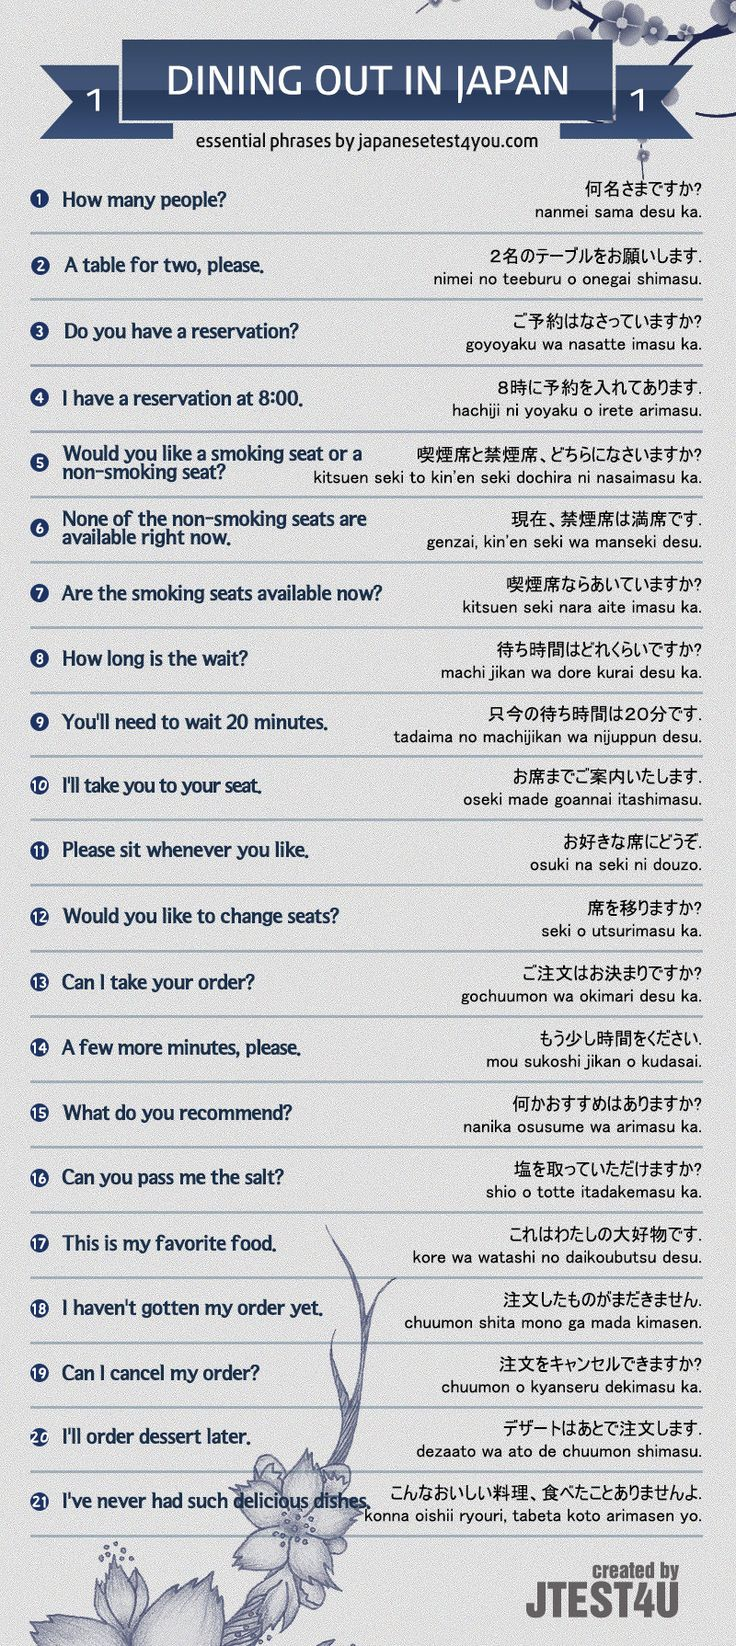 Essential Japanese phrases for dining out part 1. http://japanesetest4you.com/infographic-essential-japanese-phrases-for-dining-out-part-1/